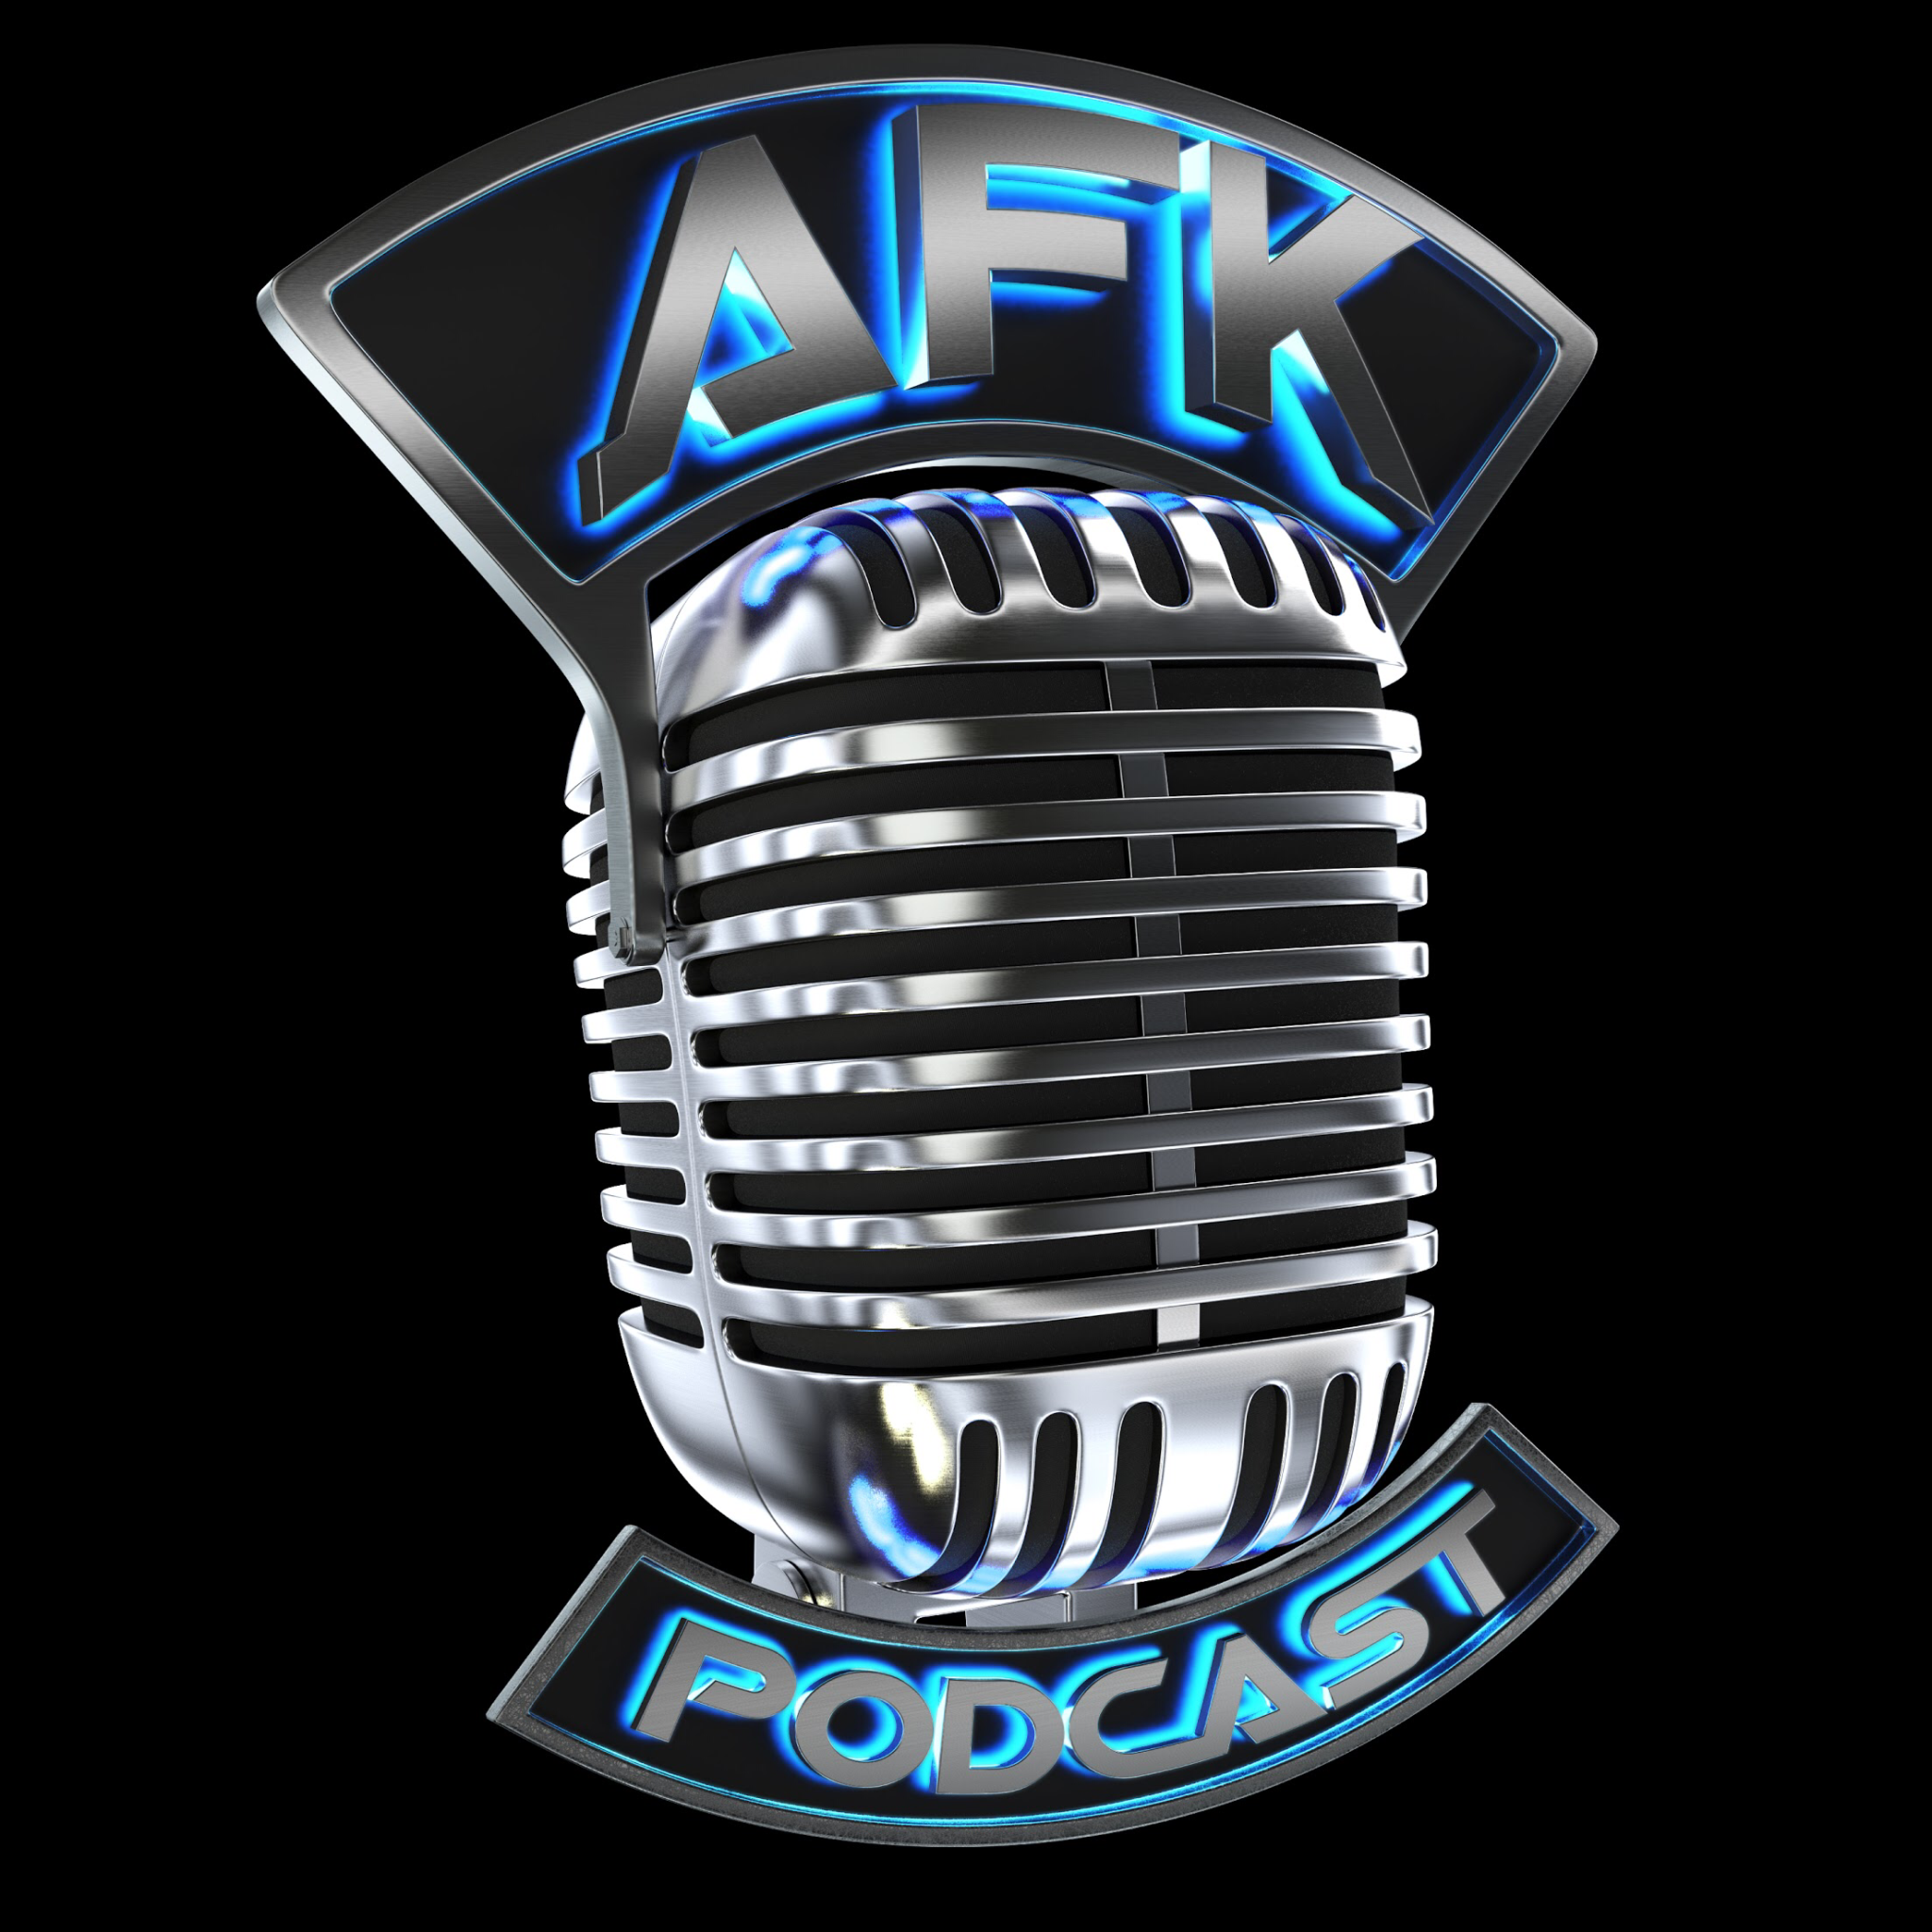 The AFK Podcast